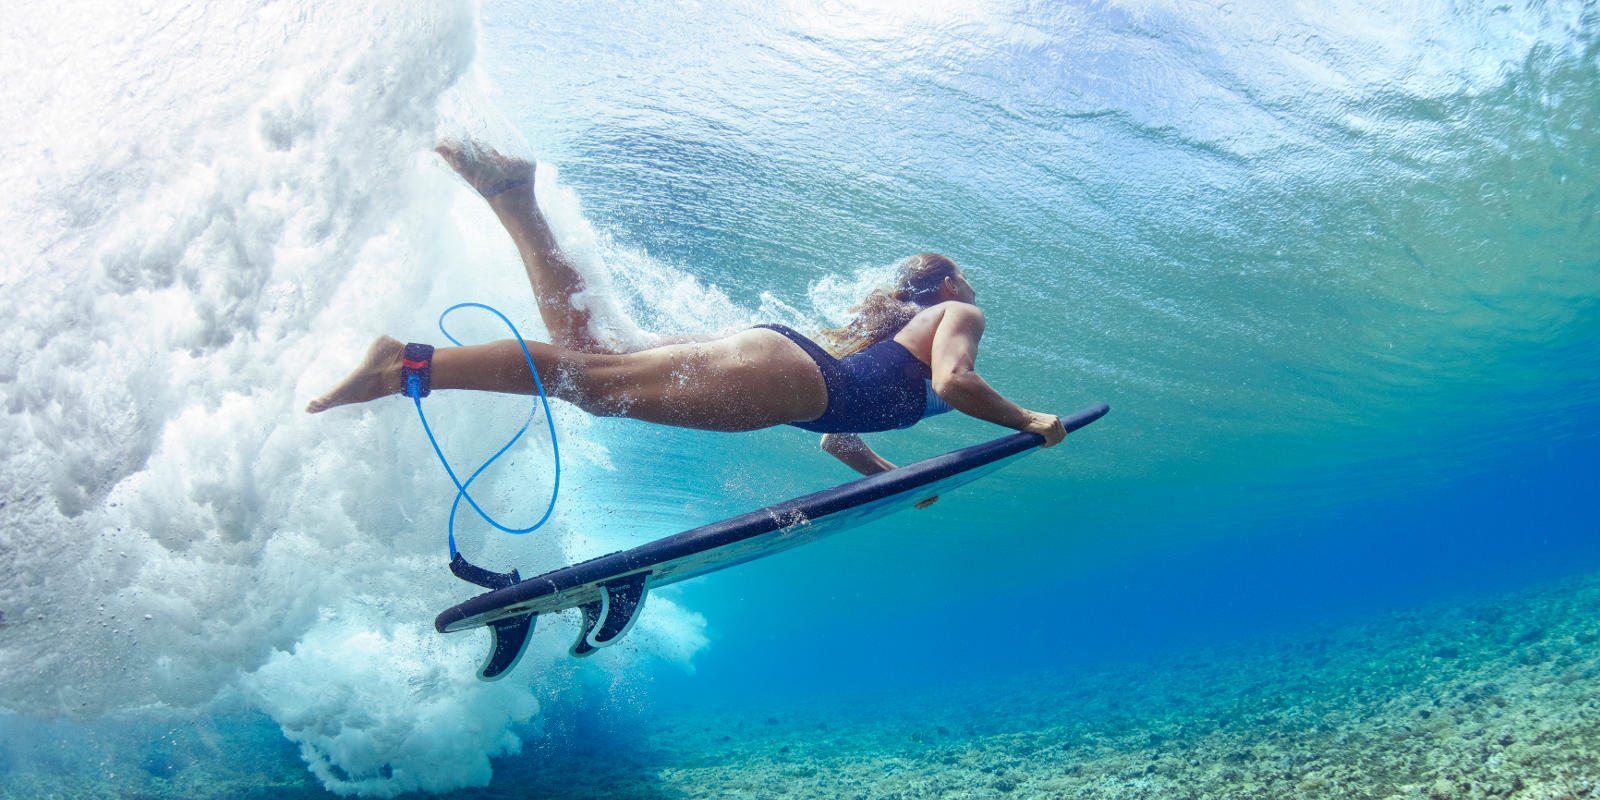 The benefits of surfing and bodyboarding